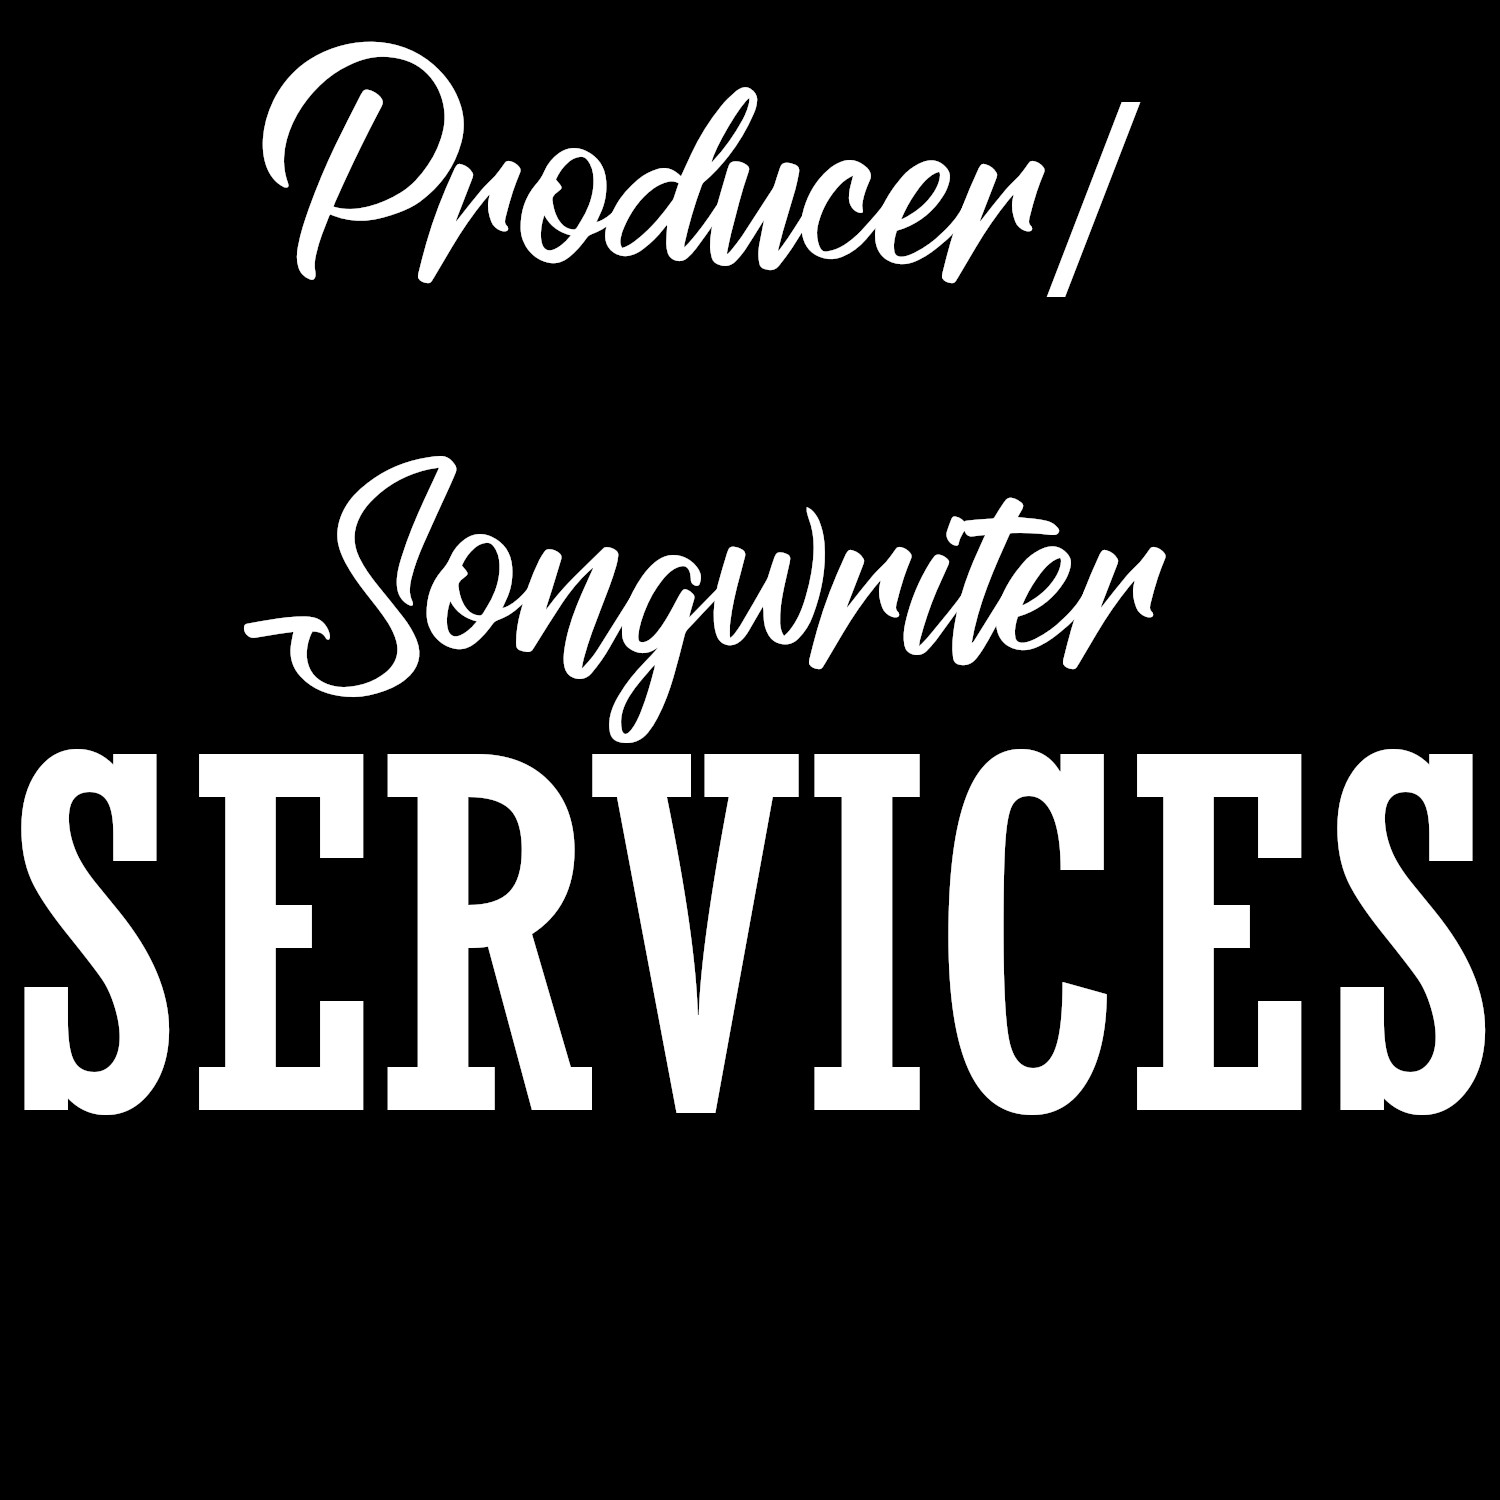 ProducerSongwriter Services.jpg